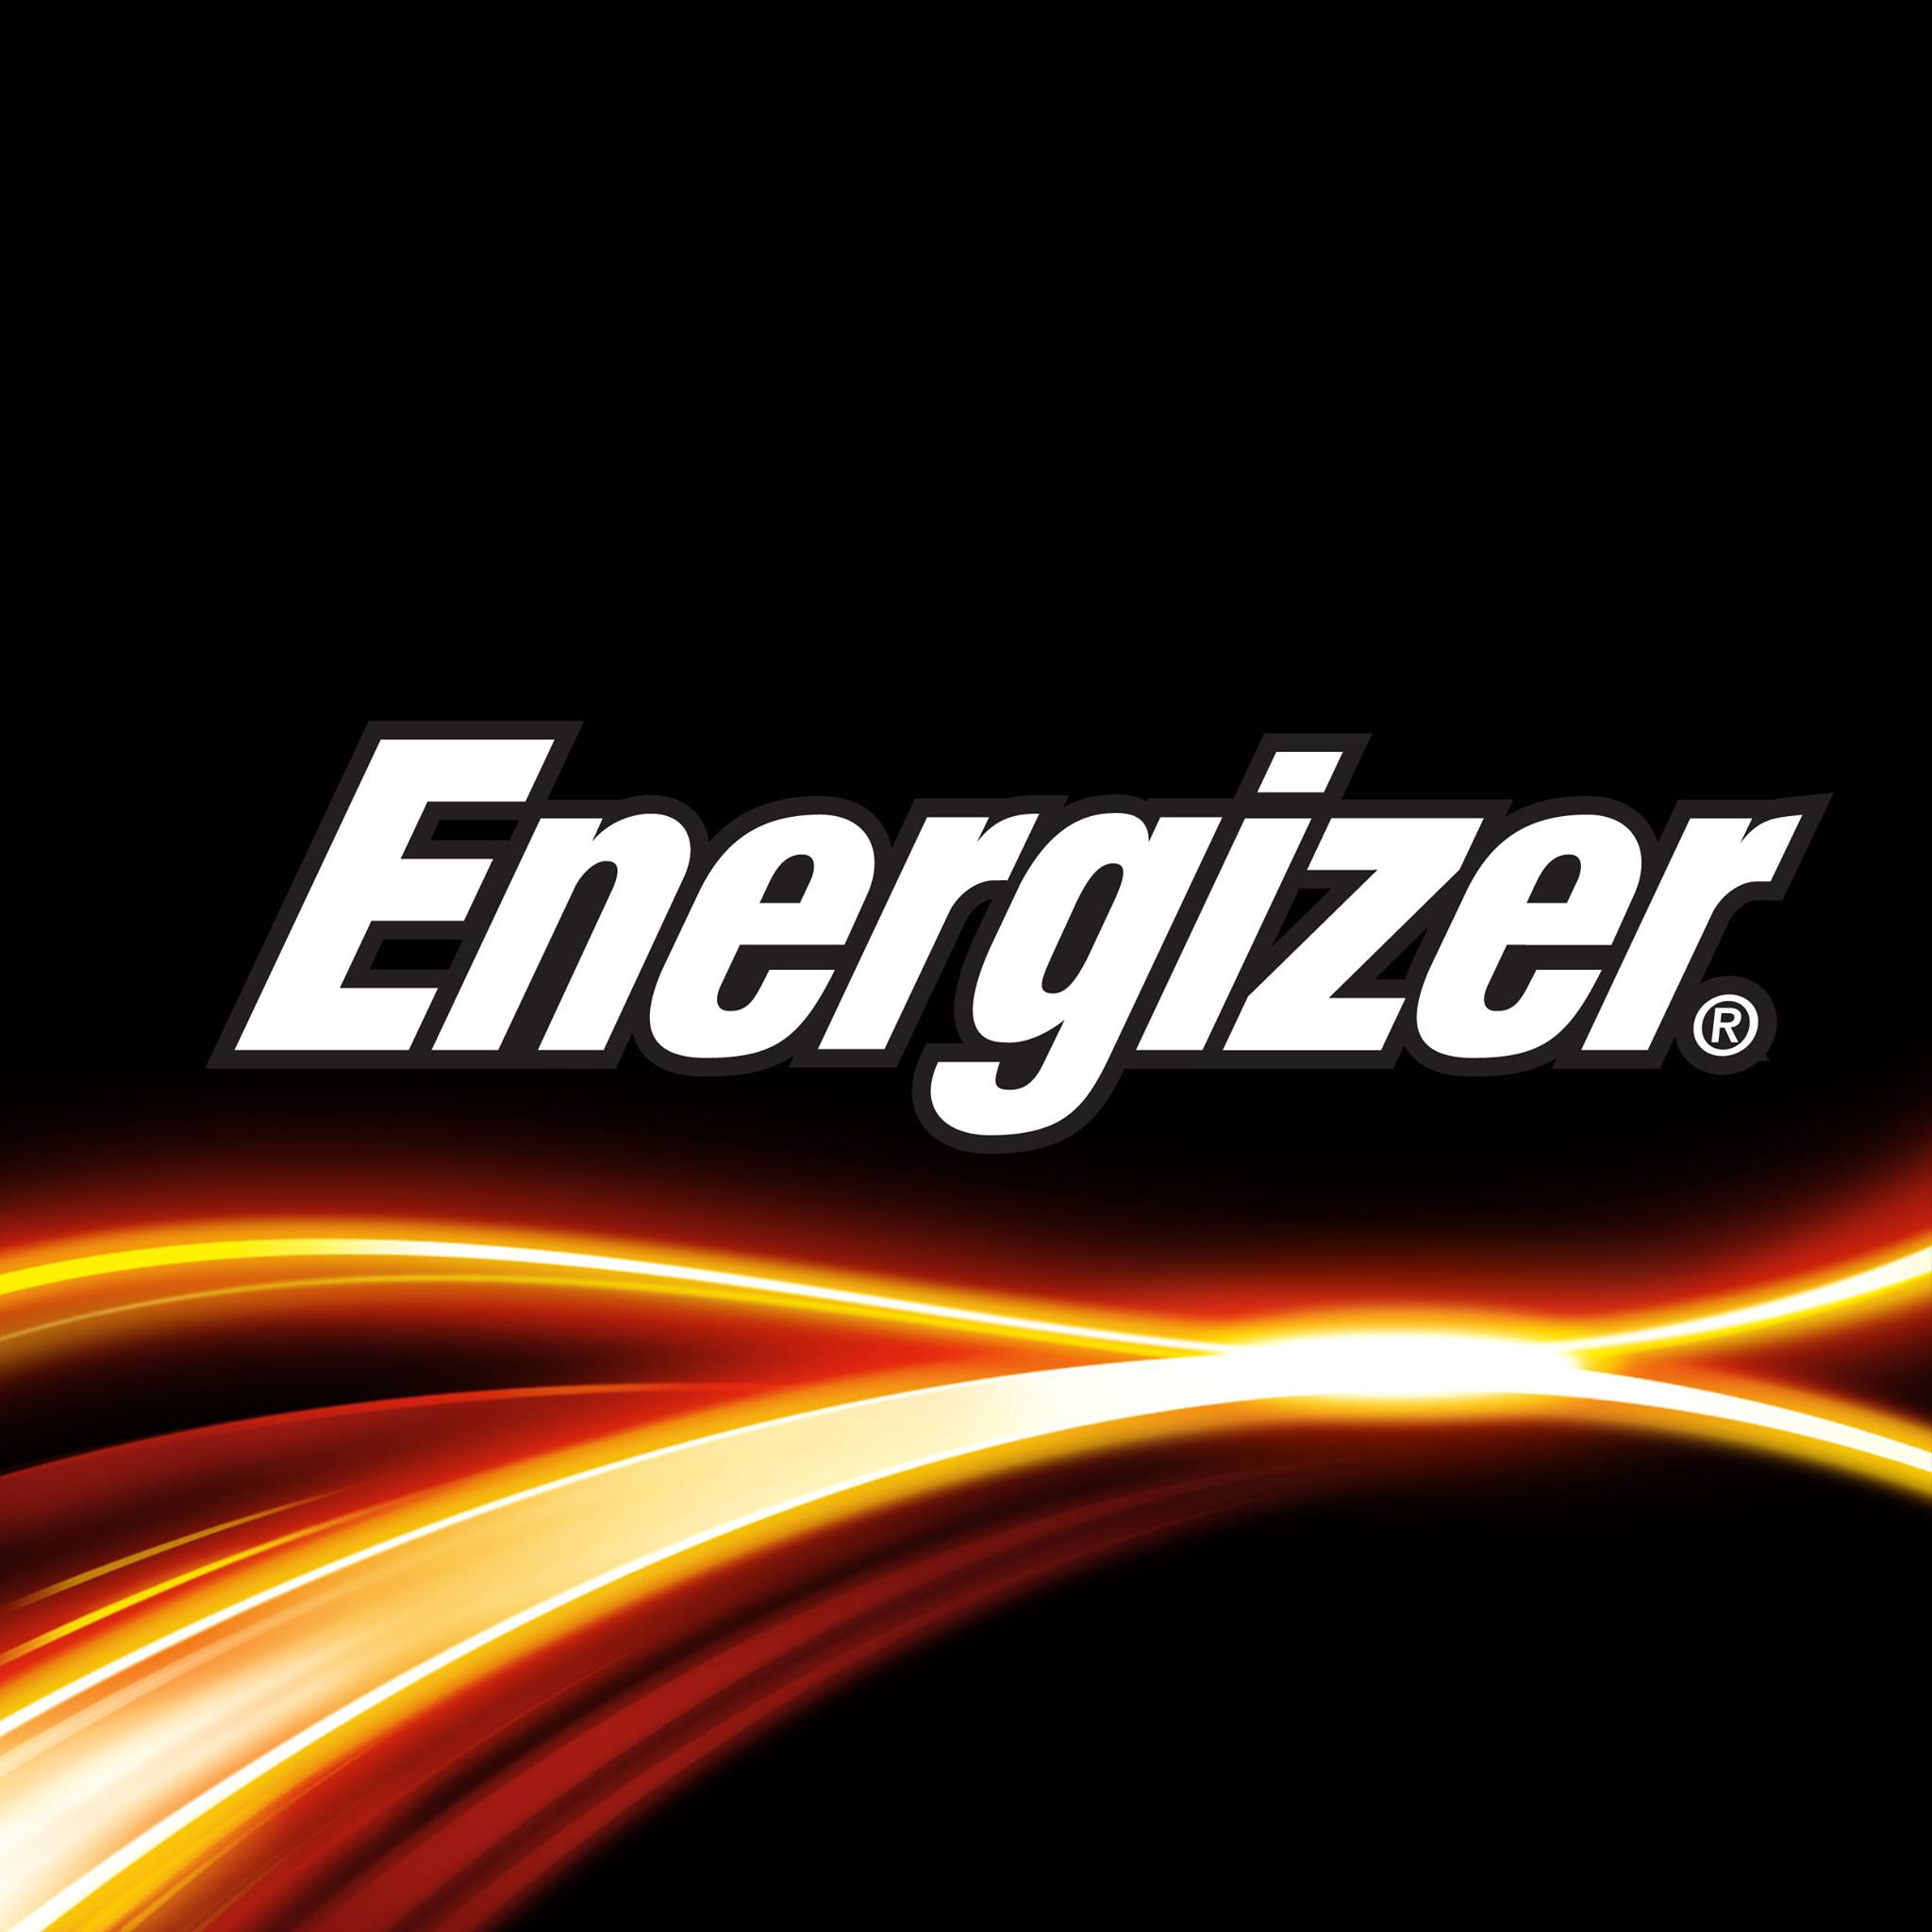 6d2dca0d4e Energizer Holdings, Inc. announces pricing of $500 million of senior notes